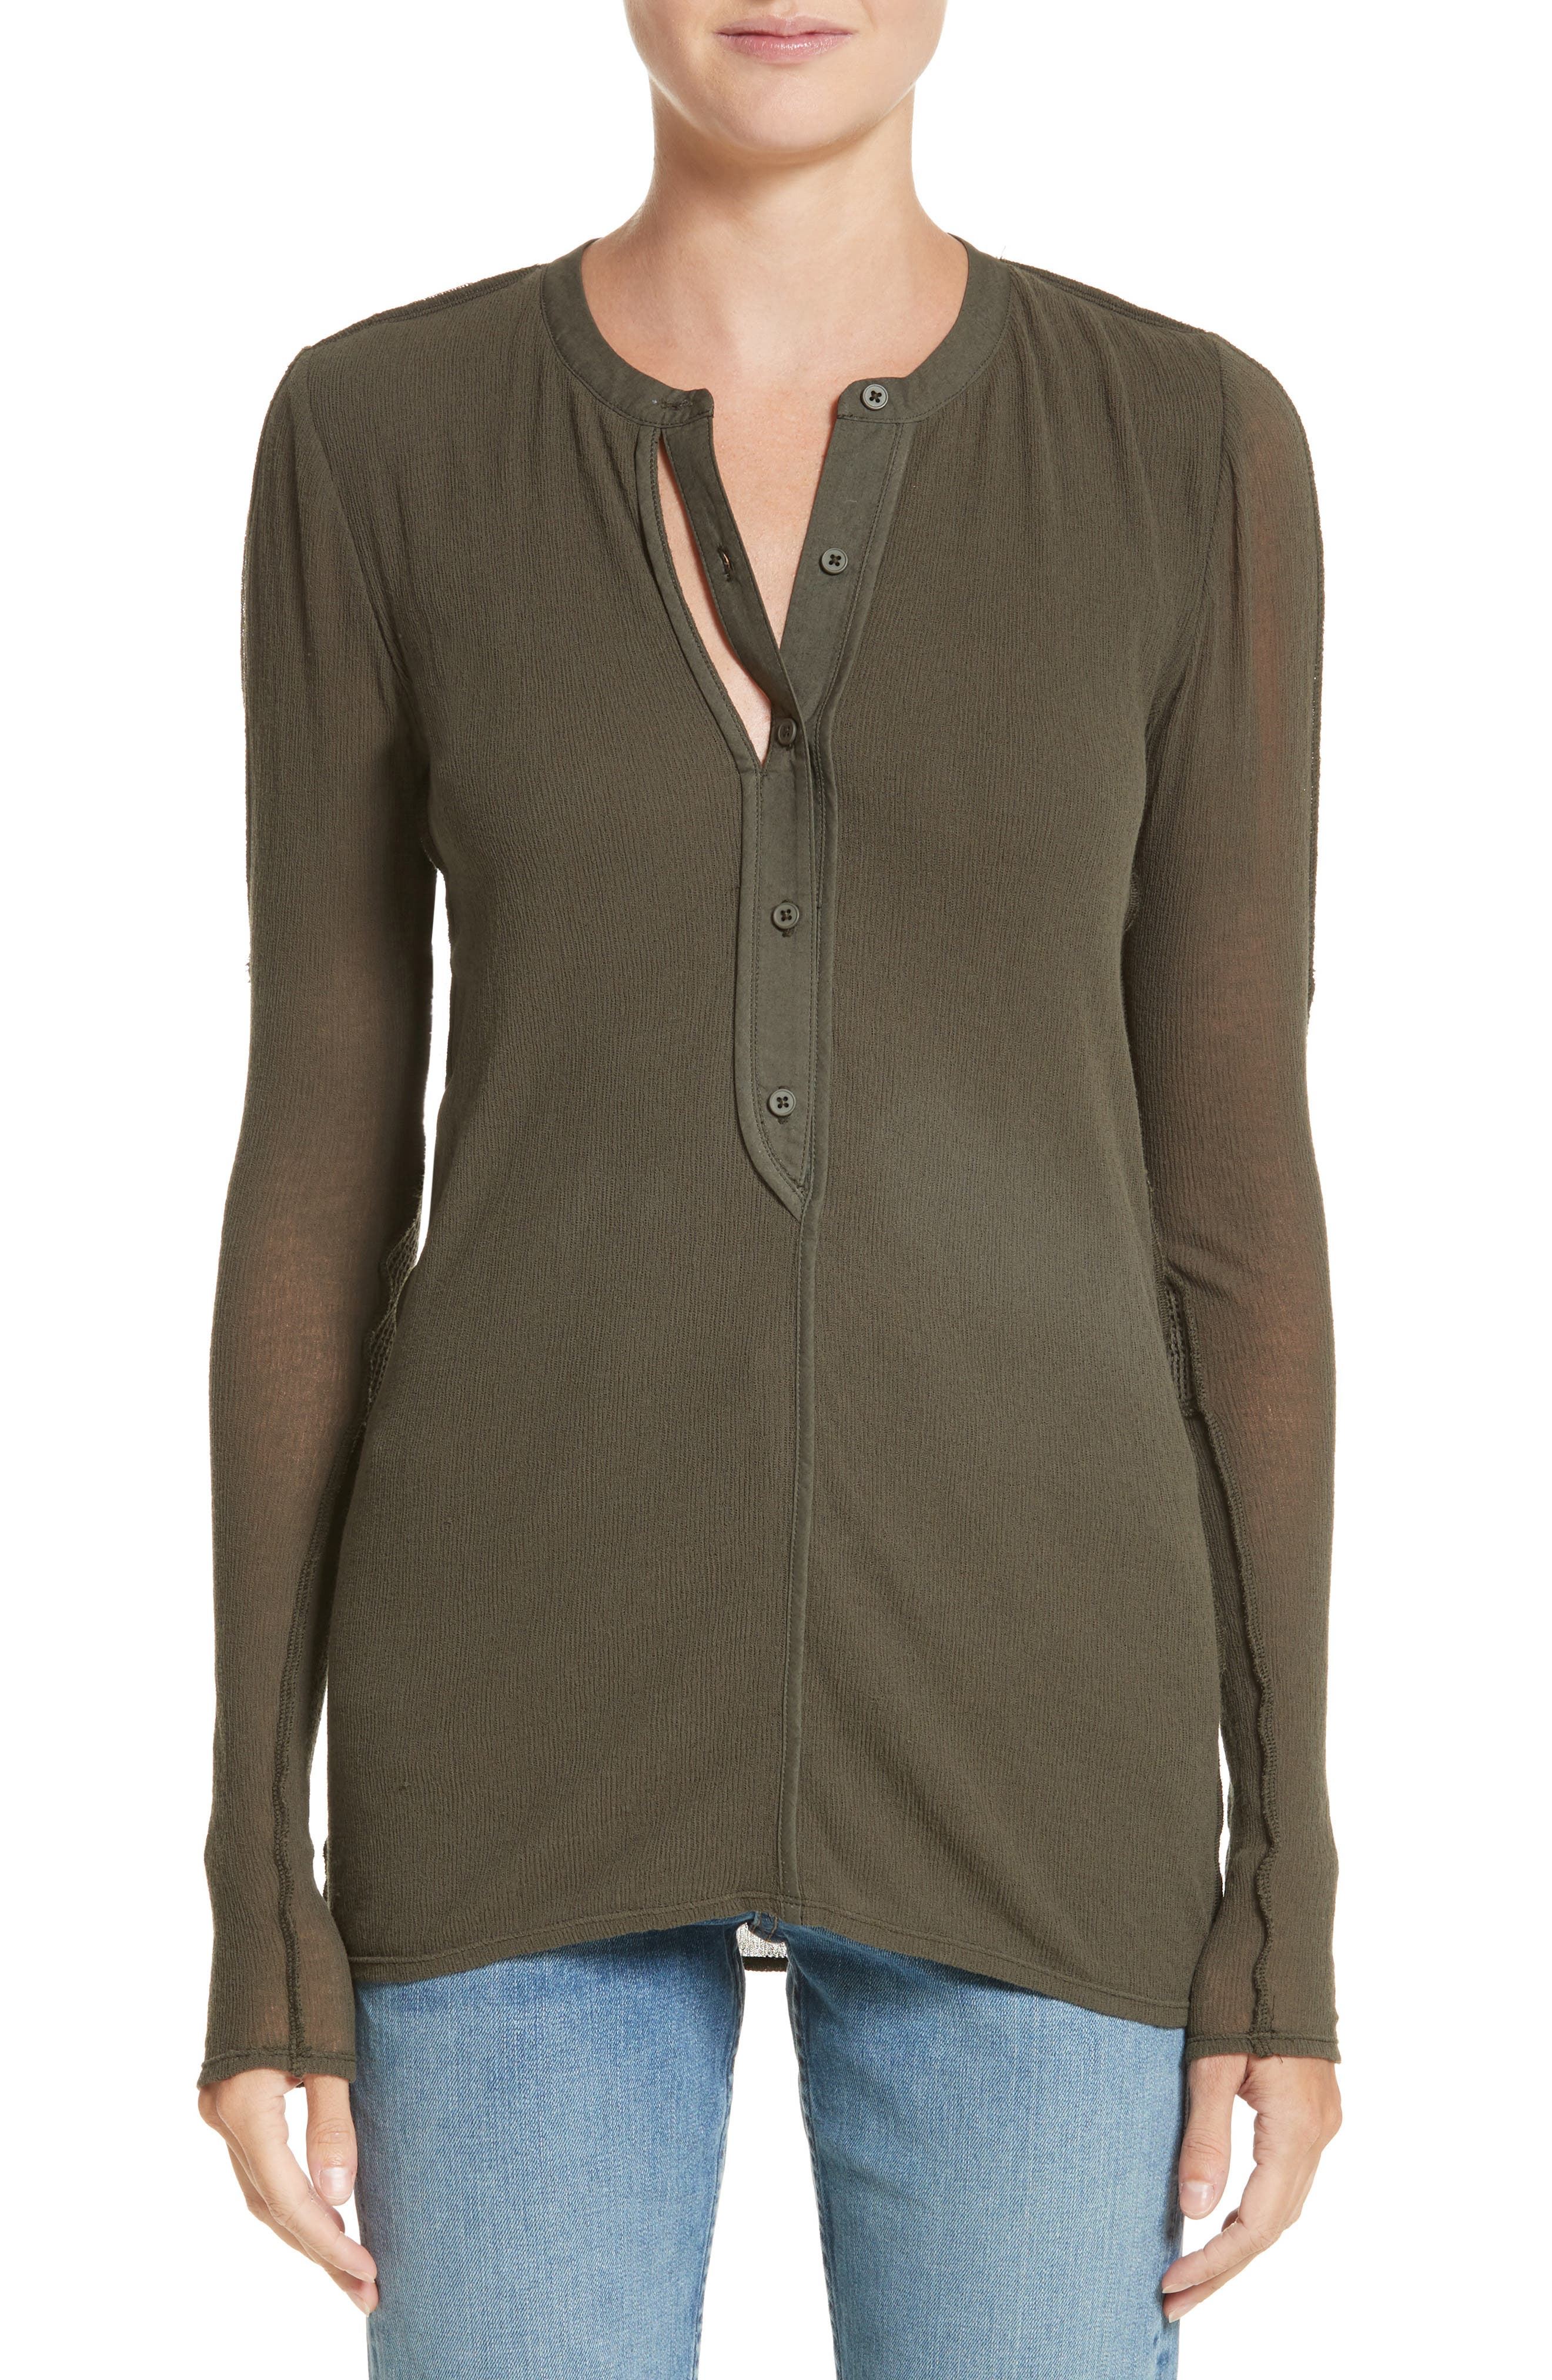 PSWL Jersey Gauze Top,                         Main,                         color, Army